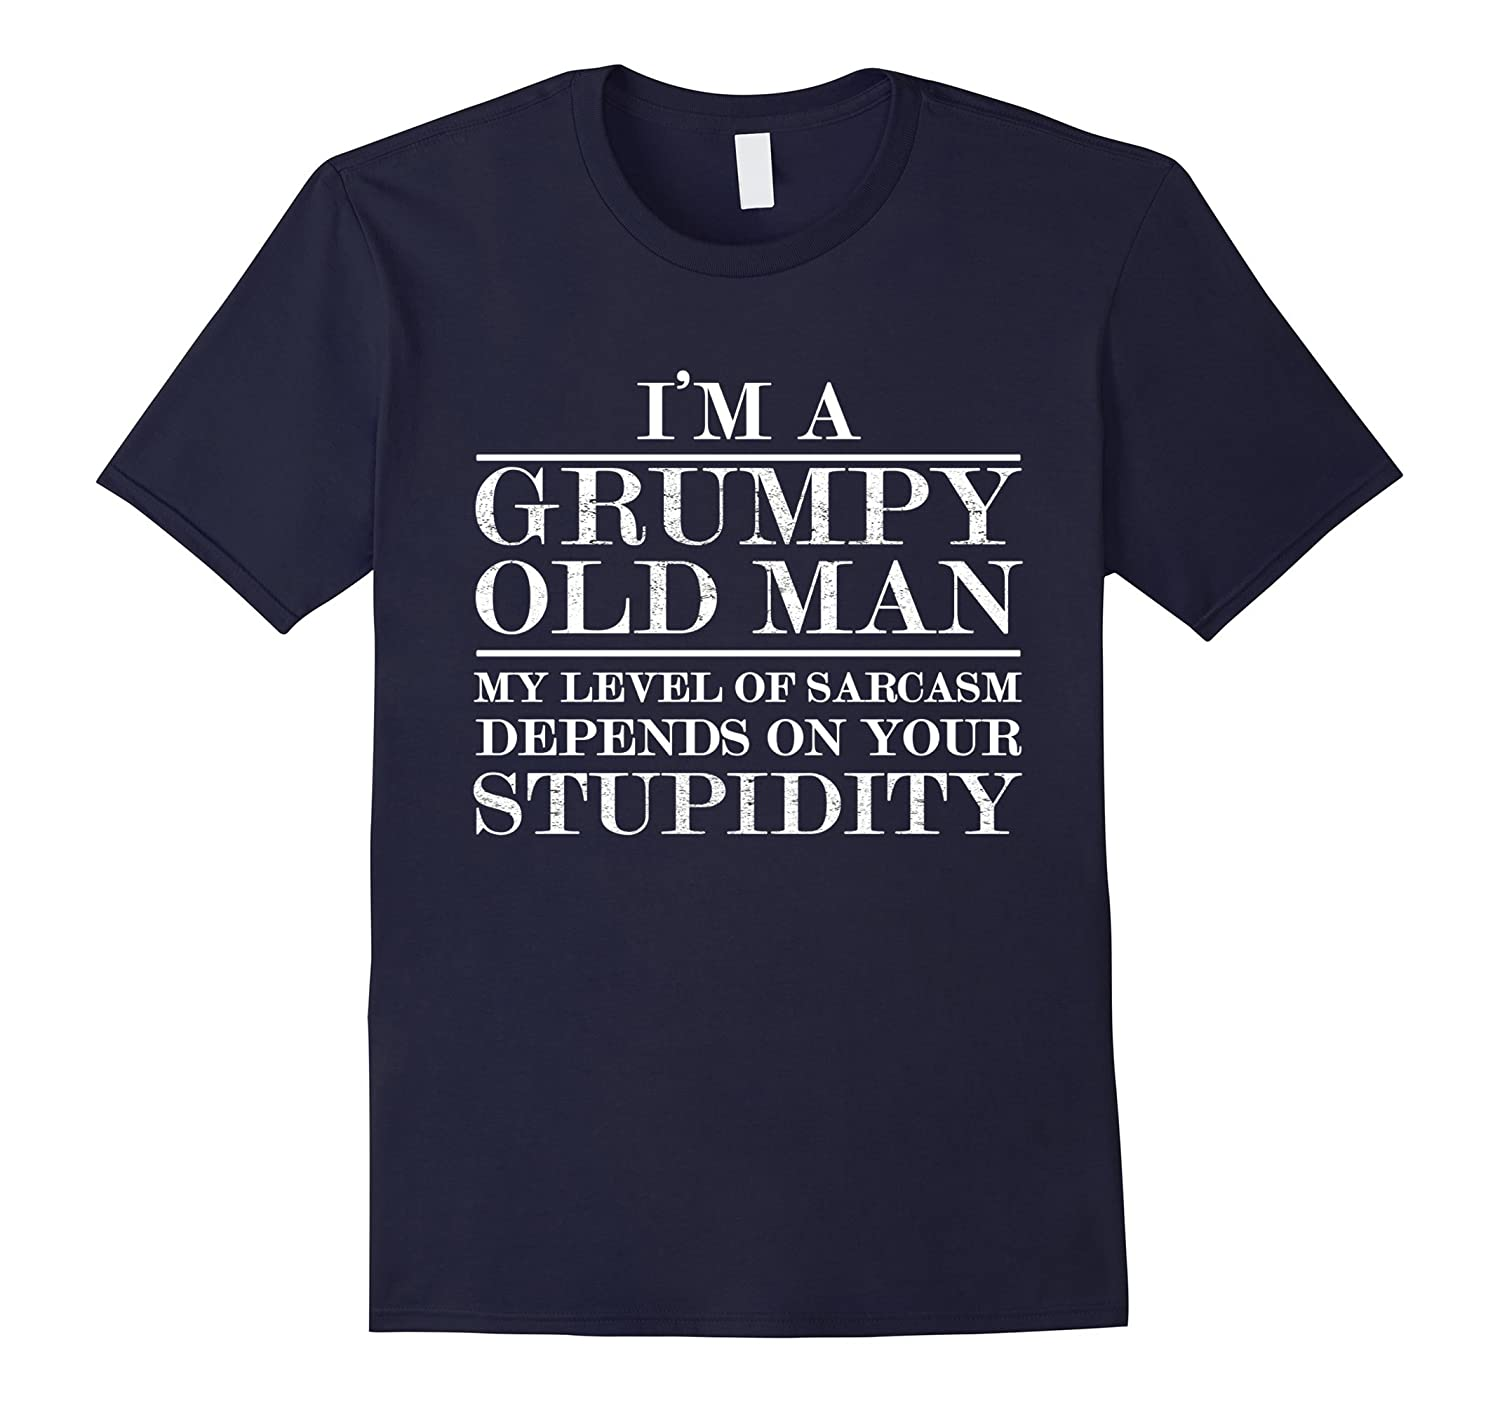 Grumpy old manmy level of sarcasm depends on your stupidity-TH